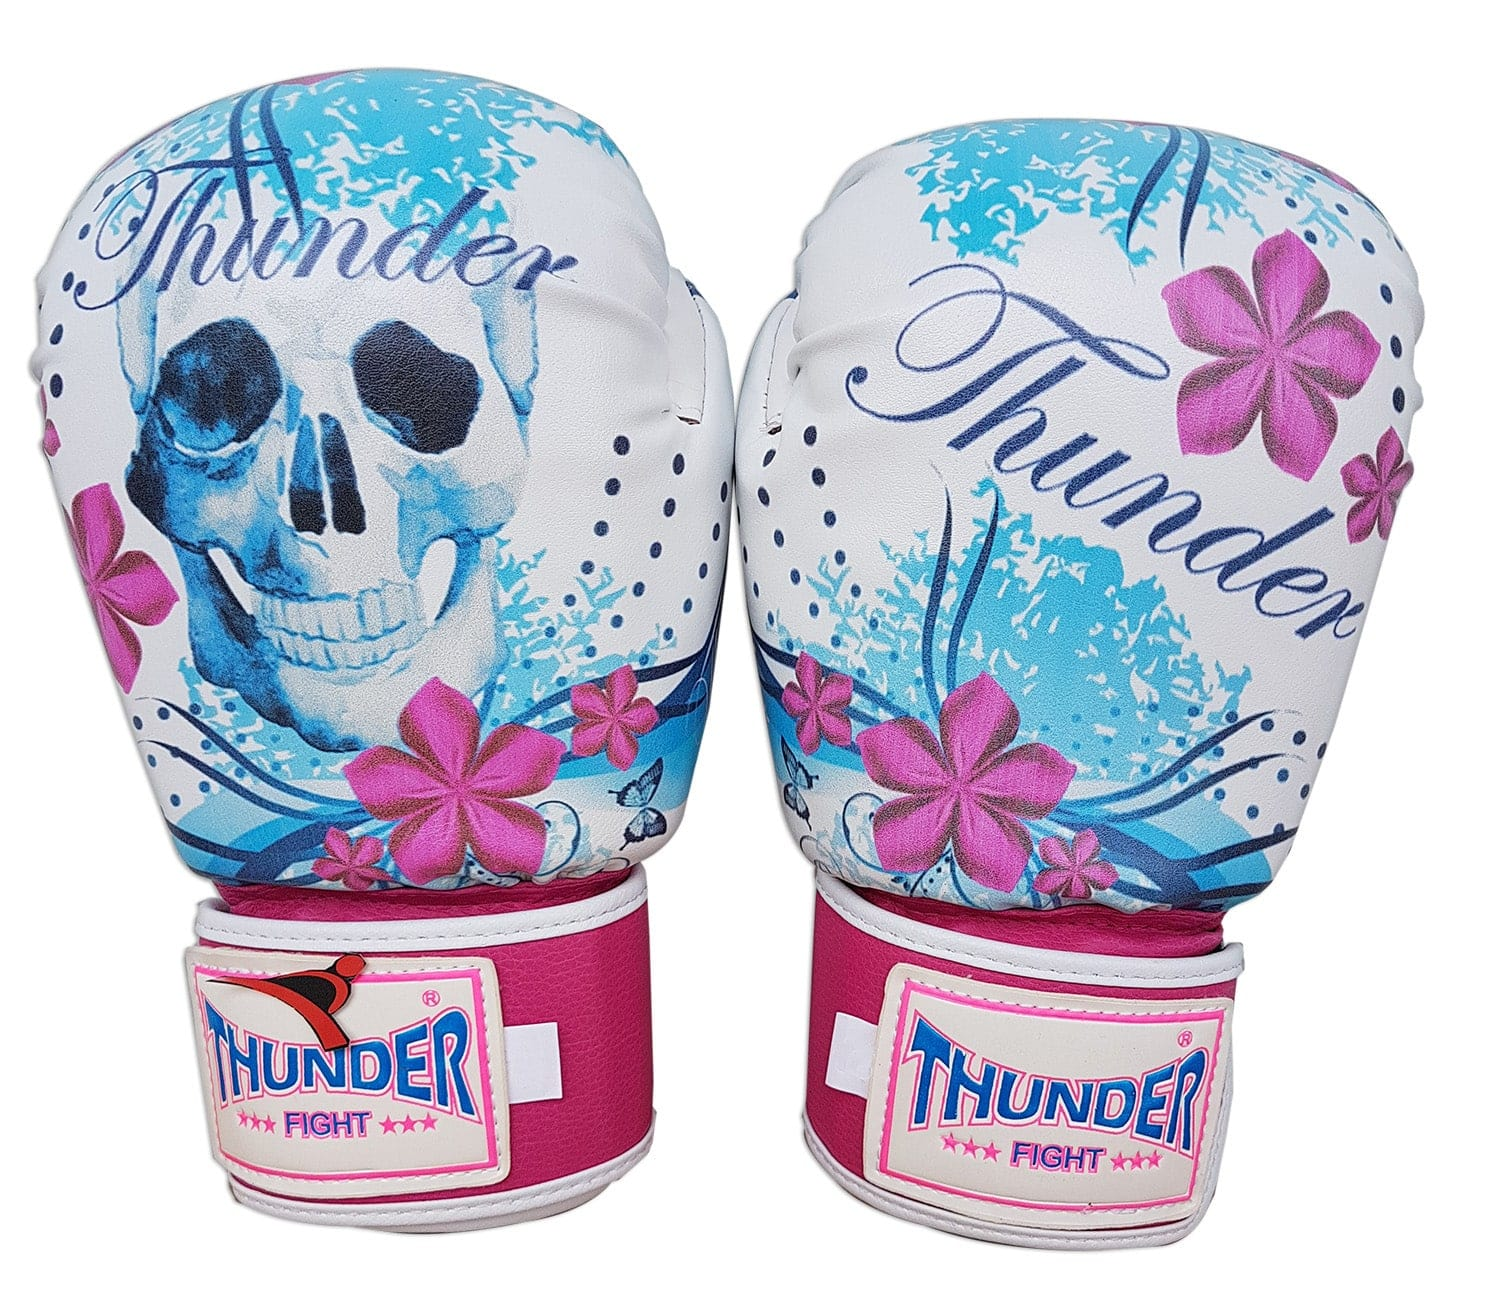 Kit de Muay Thai / Kickboxing Feminino 12oz - Caveira Azul com Rosa - Thunder Fight  - PRALUTA SHOP